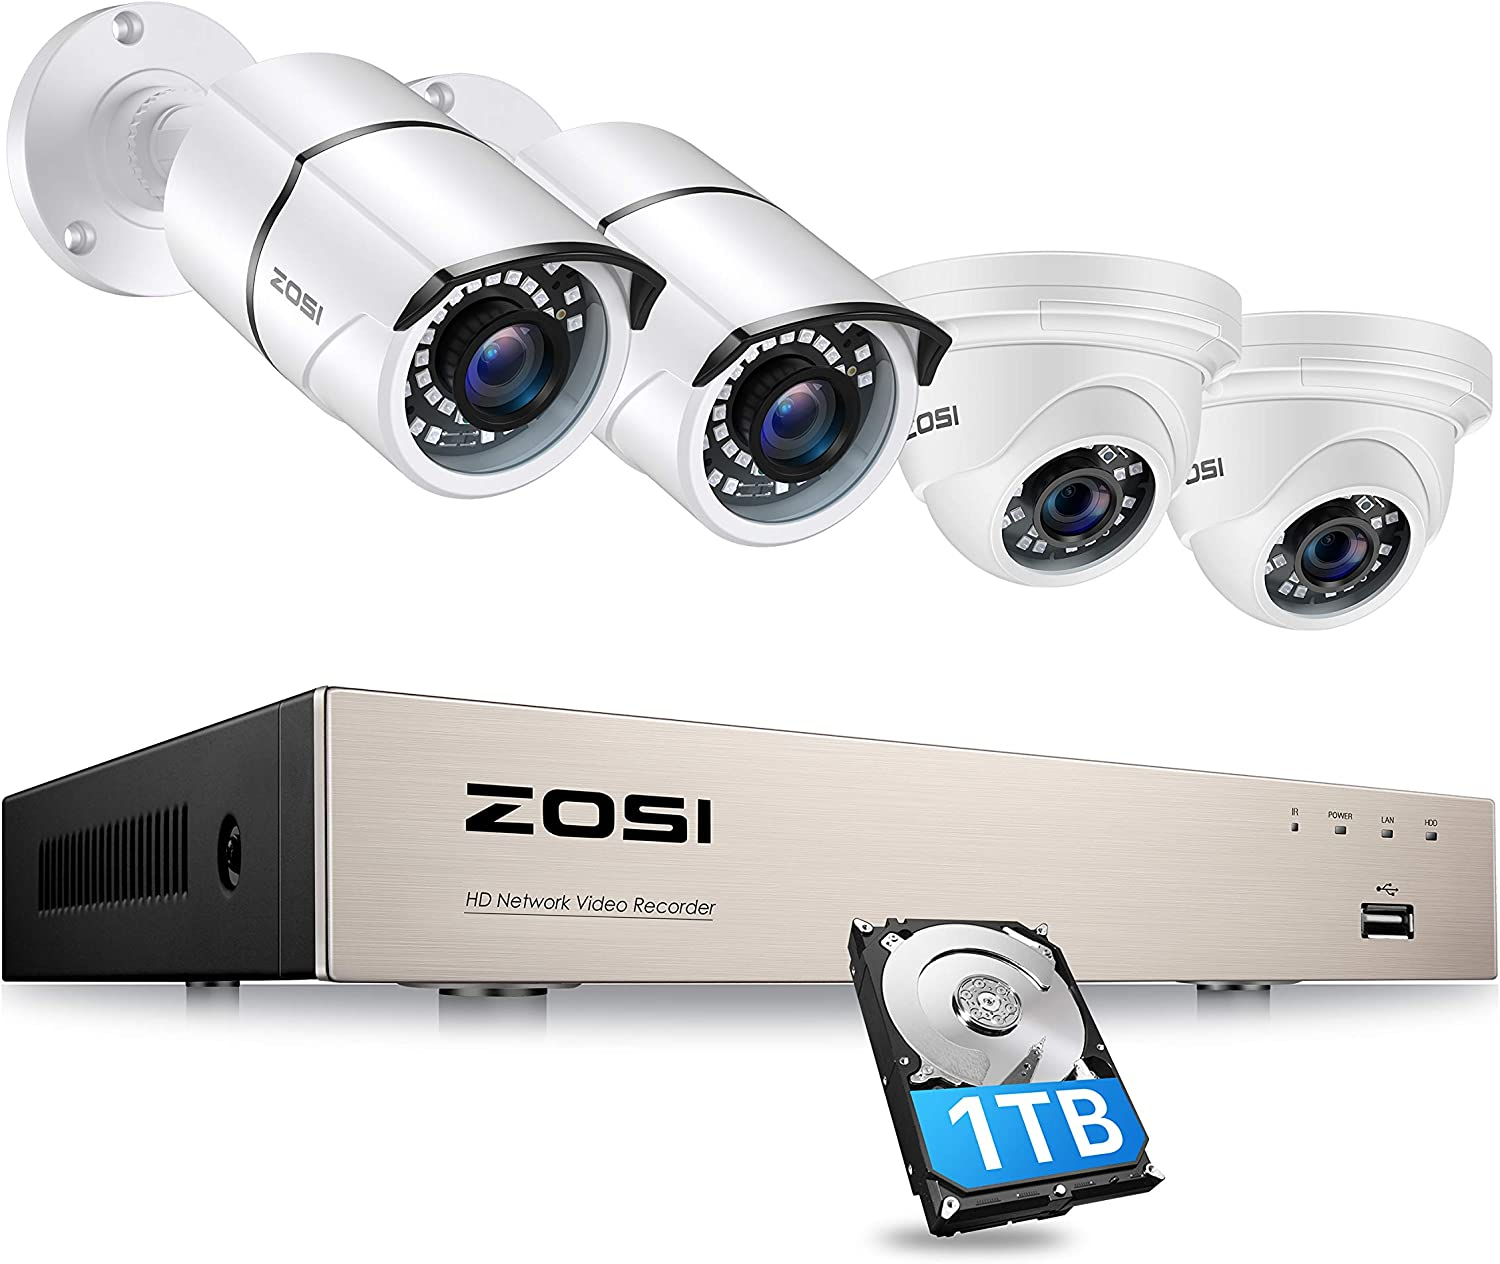 ZOSI 8CH 5MP PoE Home Security Camera System Indoor Outdoor,5MP 8-Channel H.265+ NVR with Hard Drive 1TB,4pcs Wired 5MP PoE IP Surveillance Cameras with 130ft Night Vision for 24/7 Recording